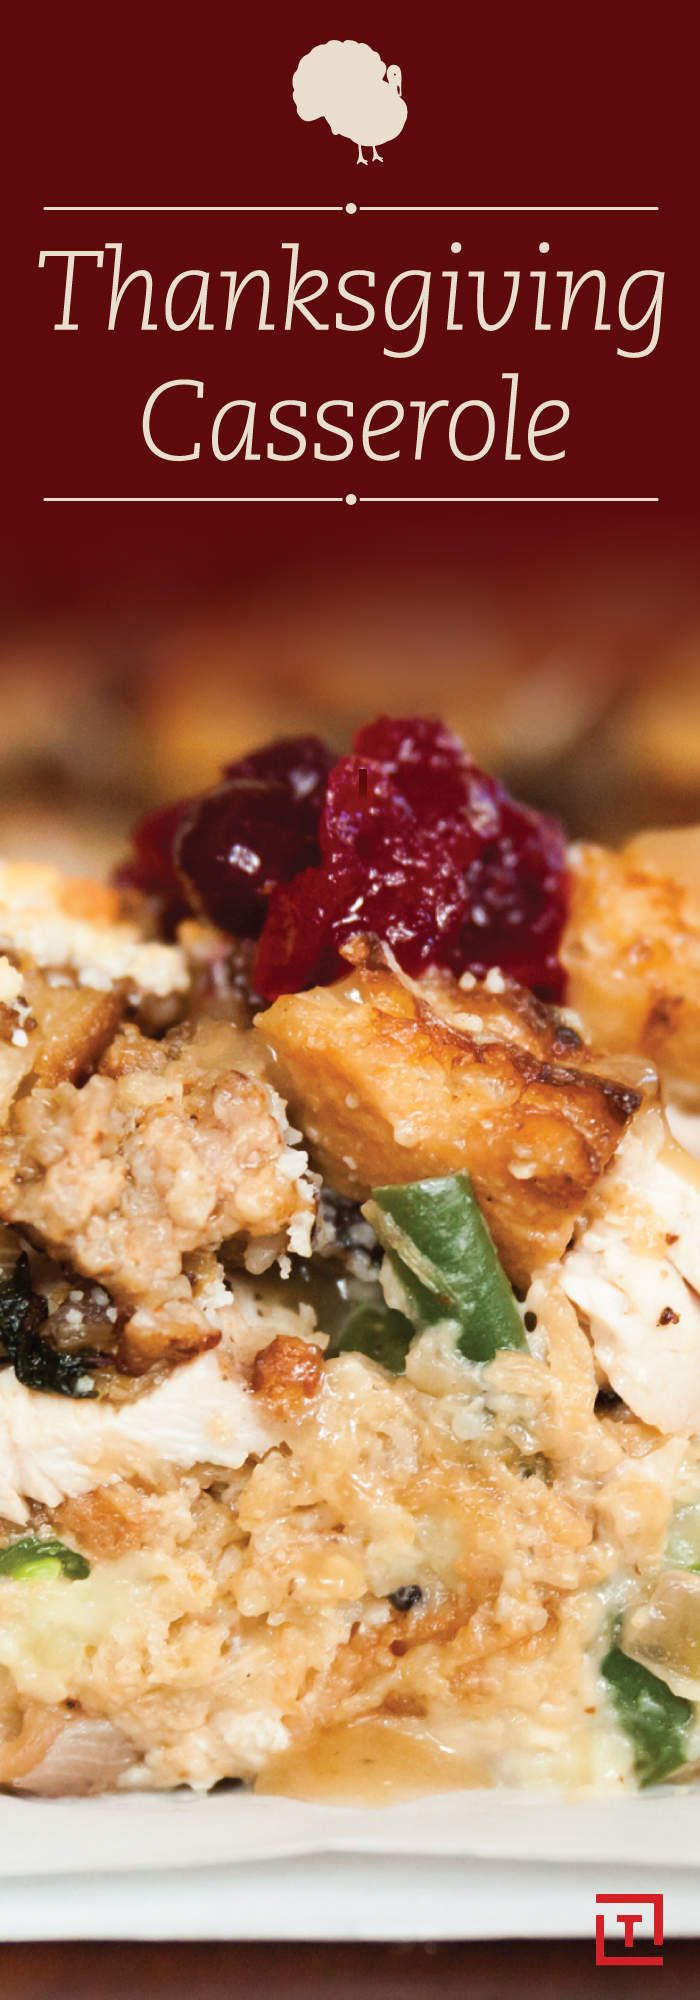 Thanksgiving casserole: the only way to eat your leftovers